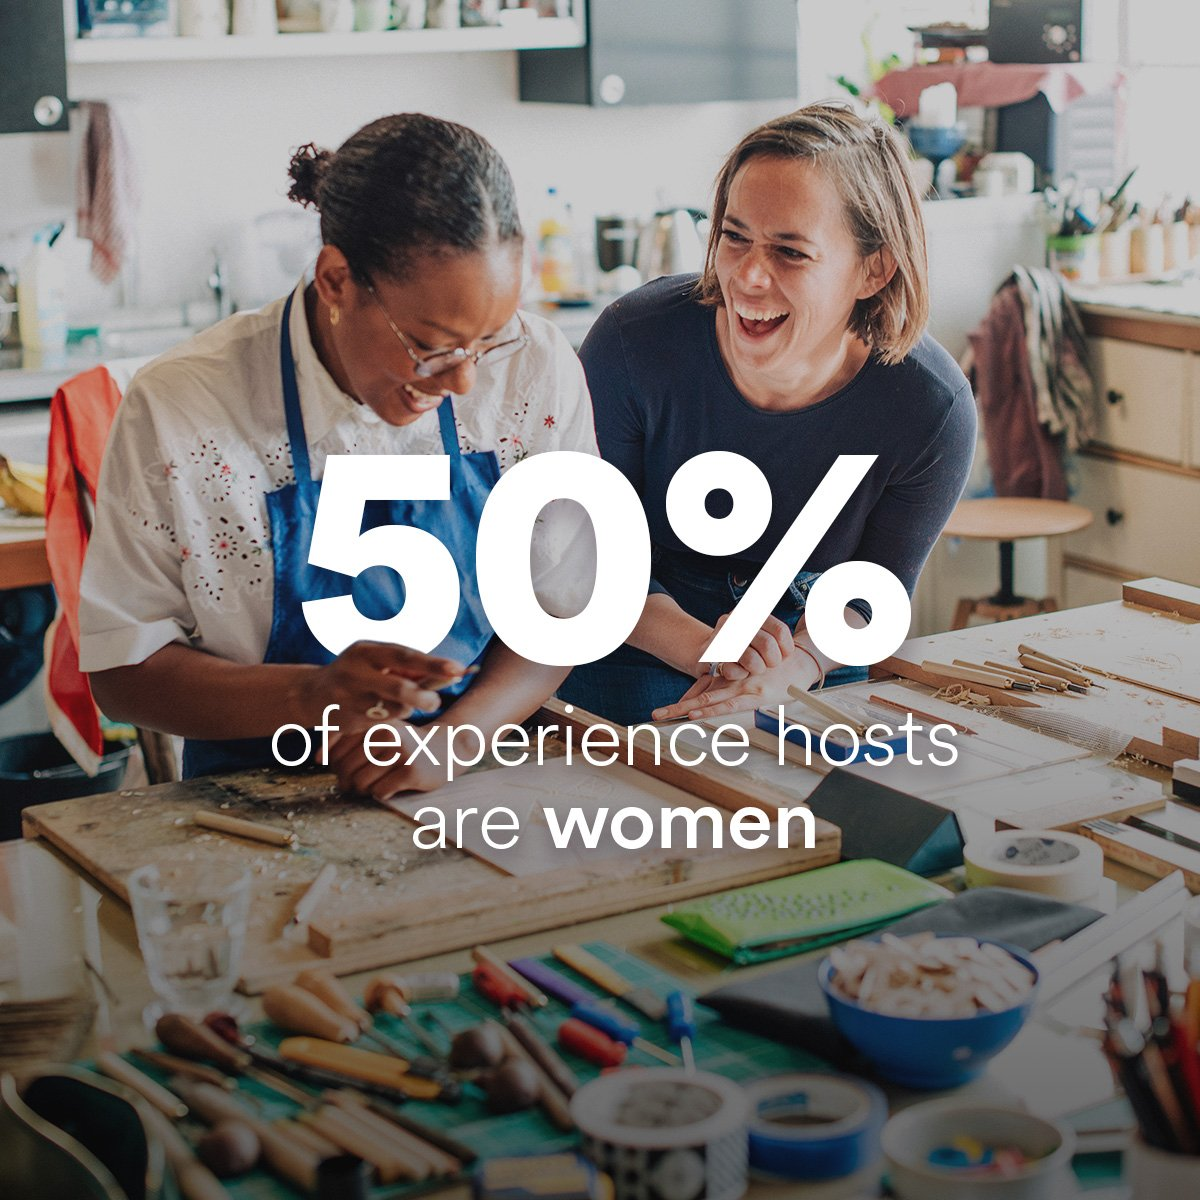 Airbnb On Twitter Among Experience Hosts 50 Are Women And 55